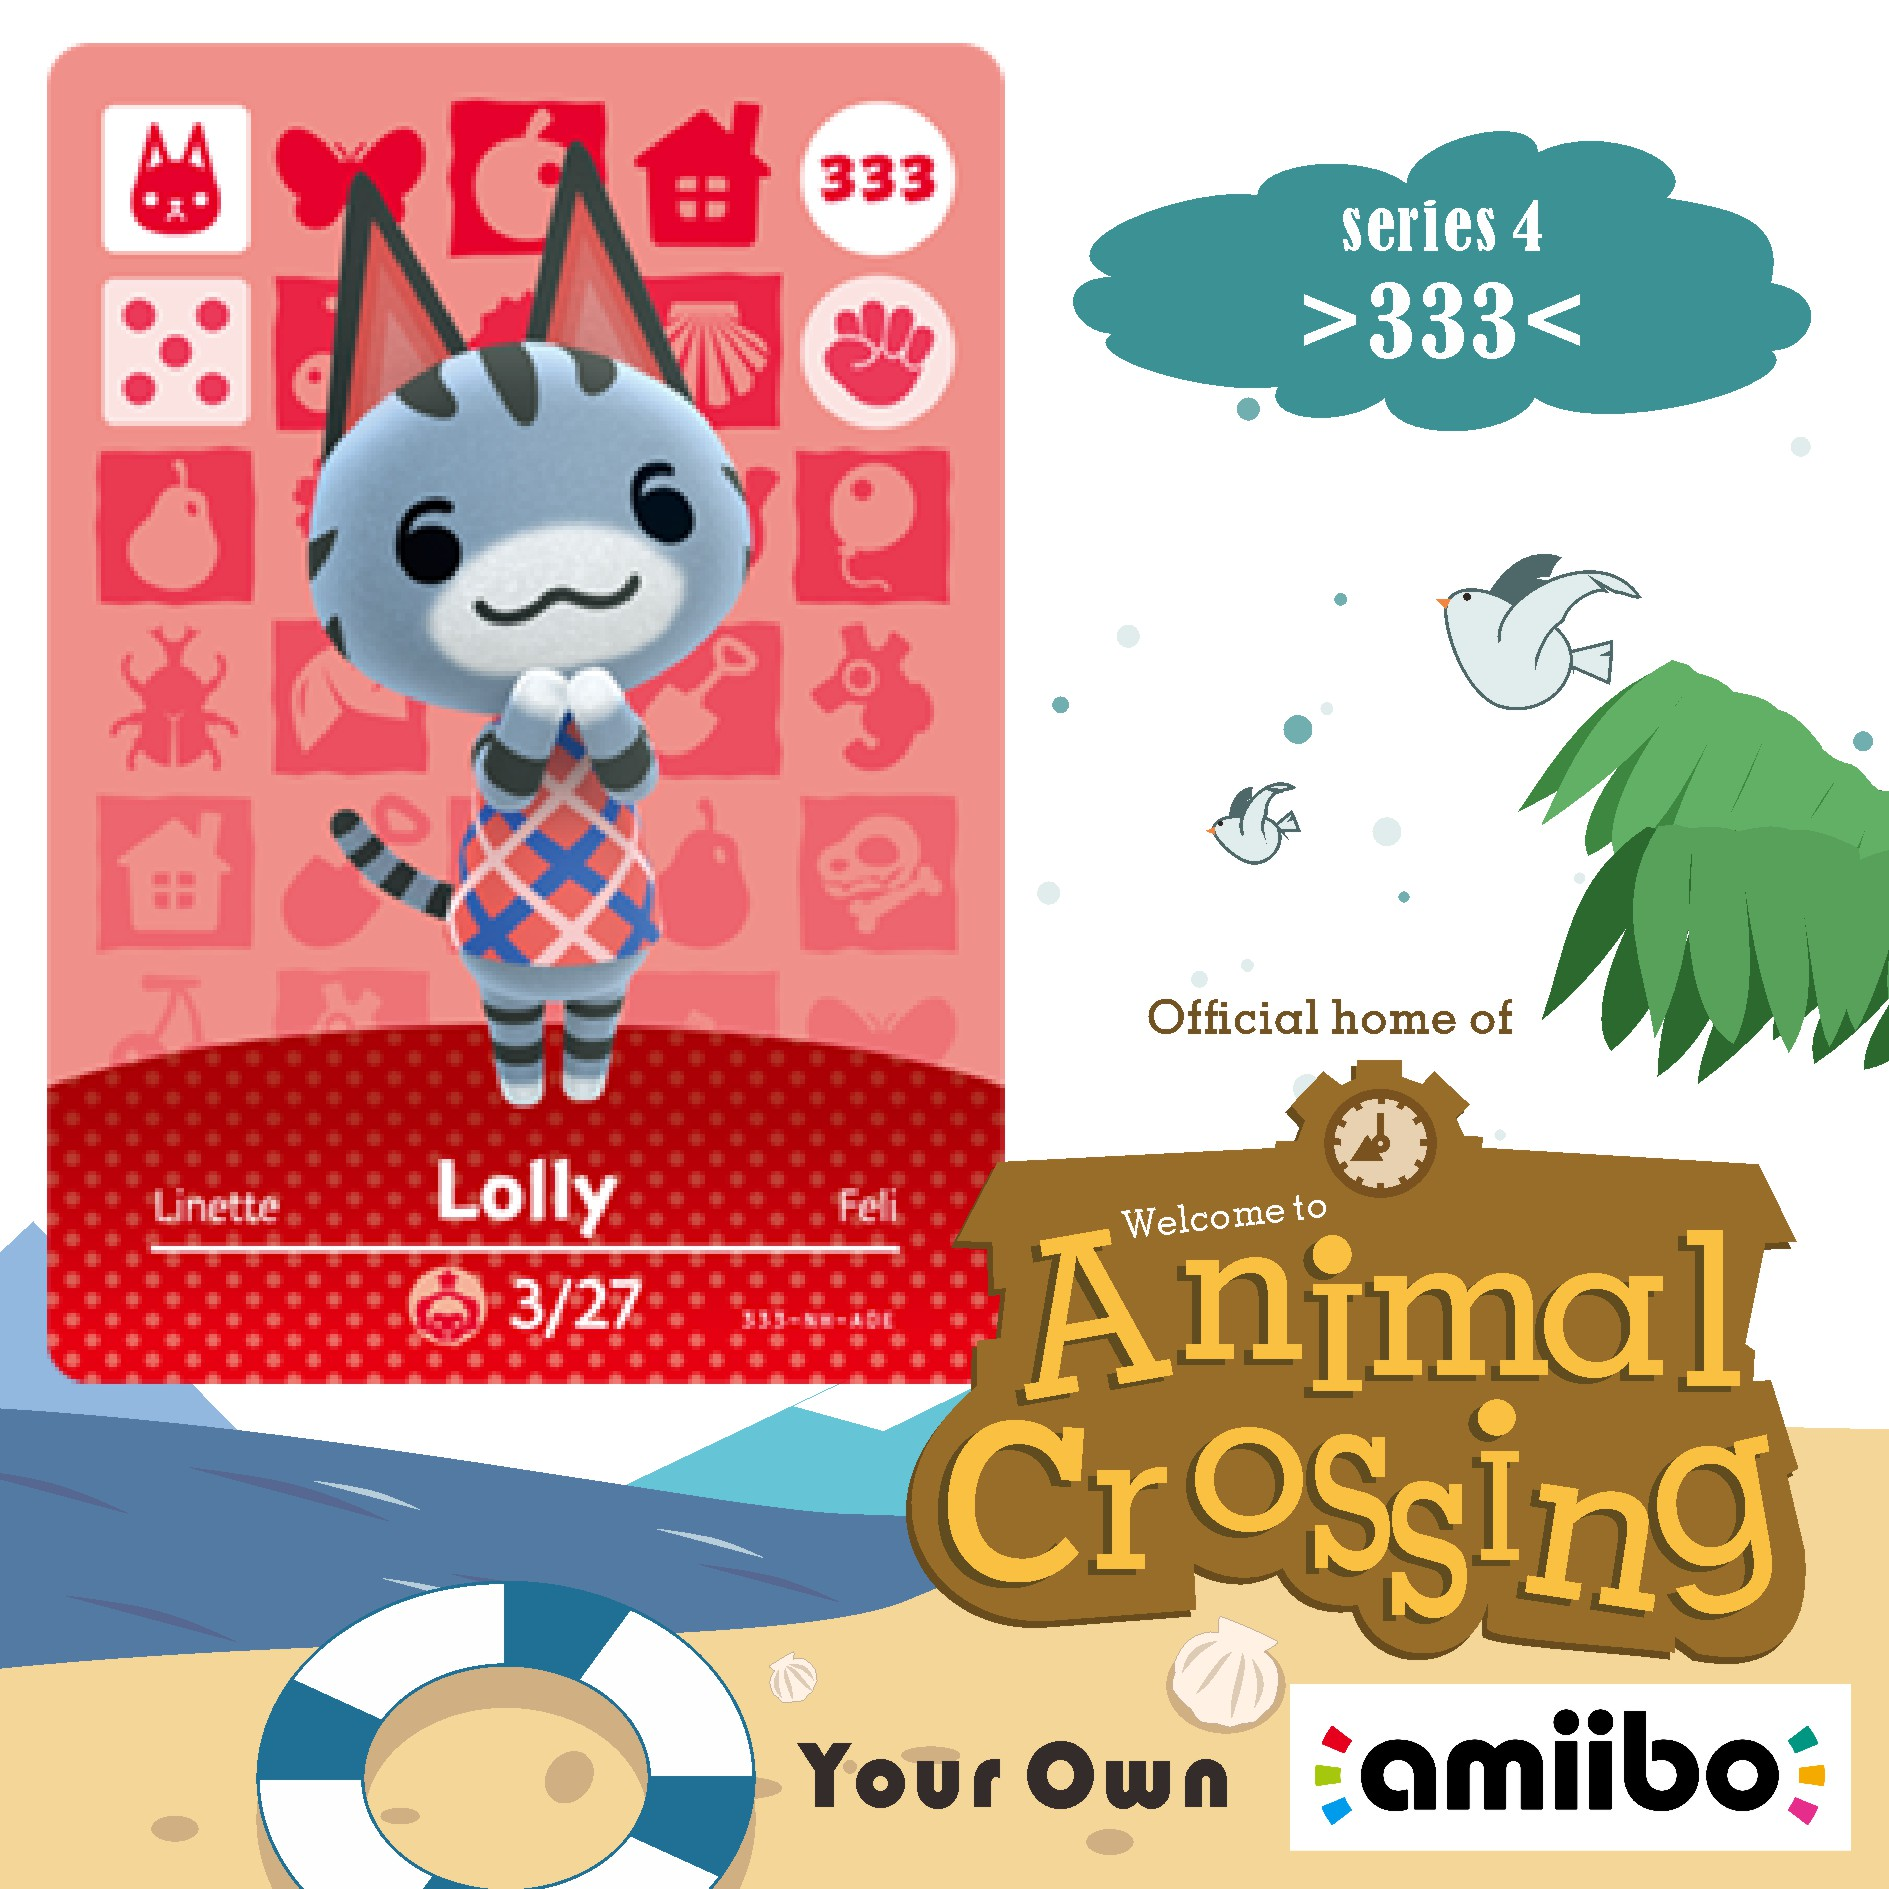 333 Animal Crossing Lolly Animal Crossing Amiibo Lolly Amiibo Lolly  Villager Amiibo Card New Horizons NFC Card for NS Games 1